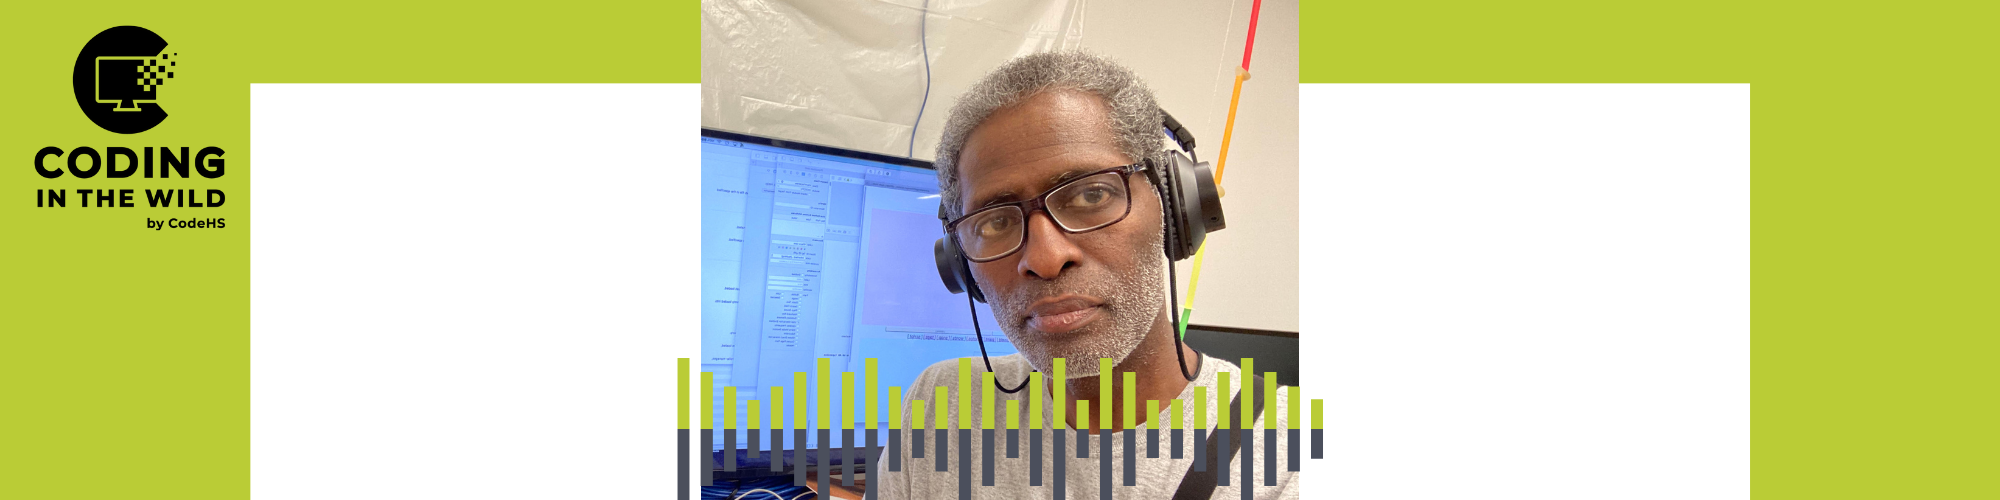 Episode 3: Coding in Interactive Art with John Henry Thompson ...